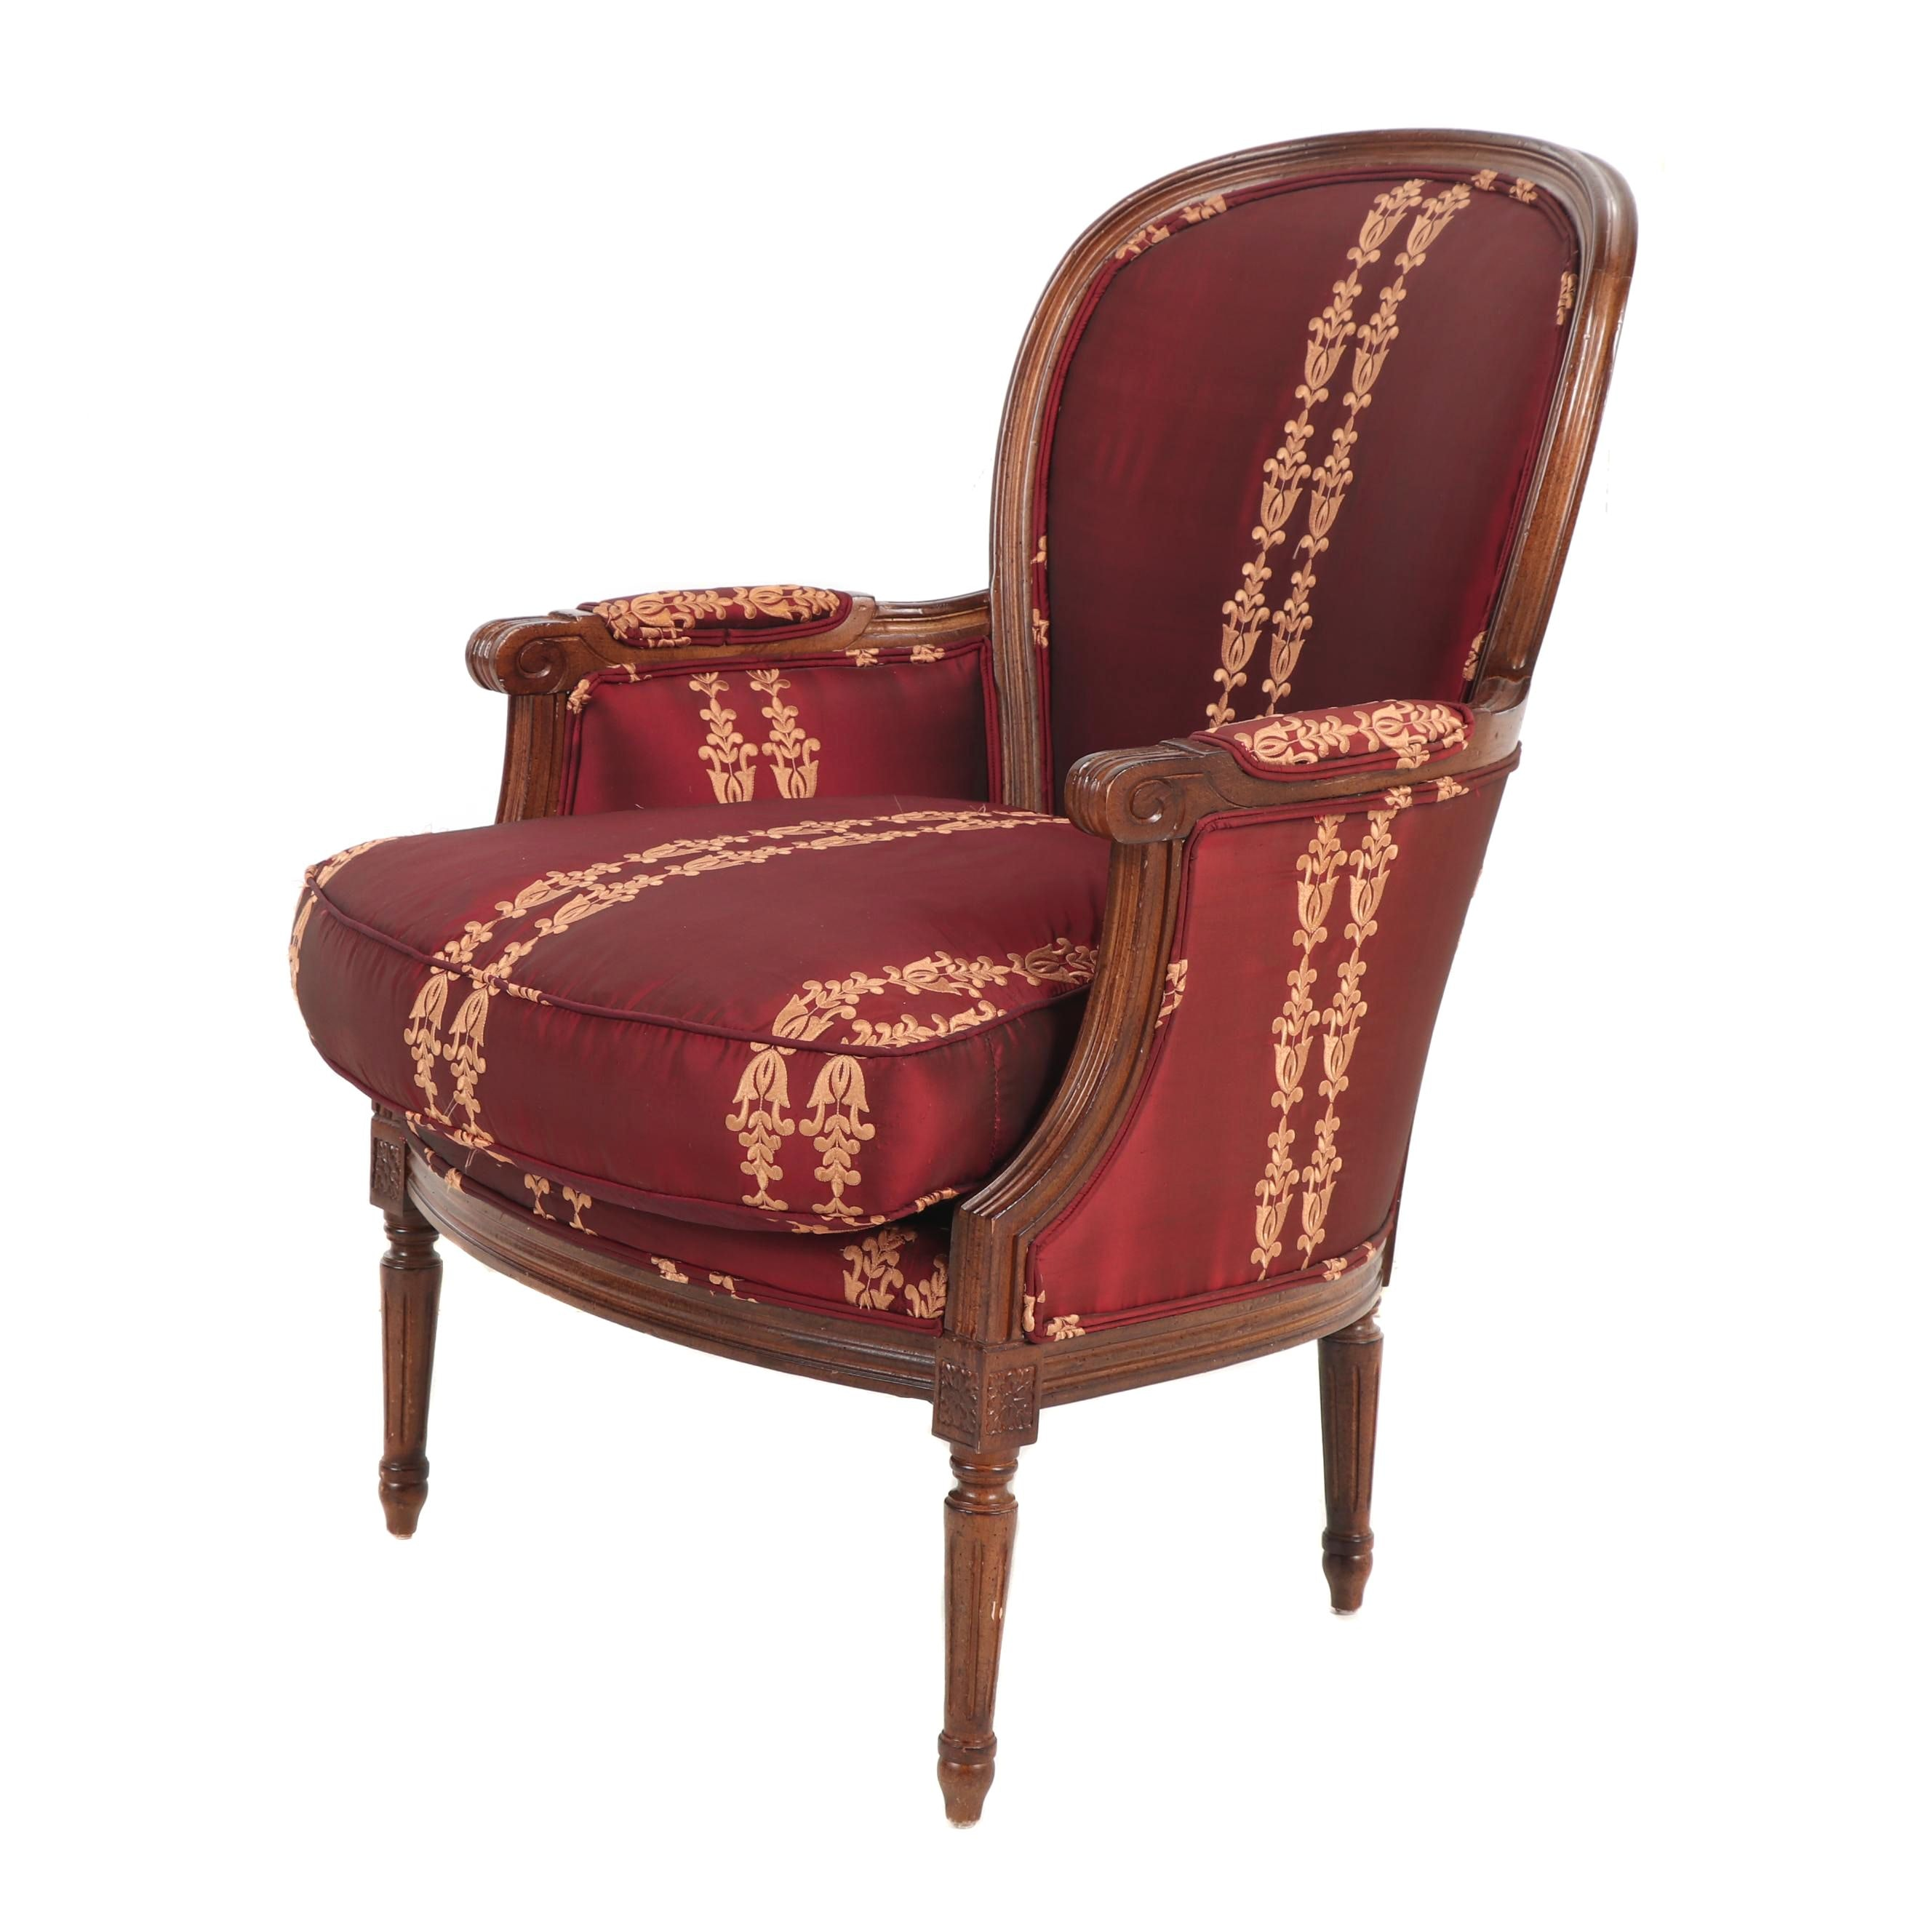 Contemporary Maroon & Gold Upholstered Louis XVI Style Wooden Bergere Armchair